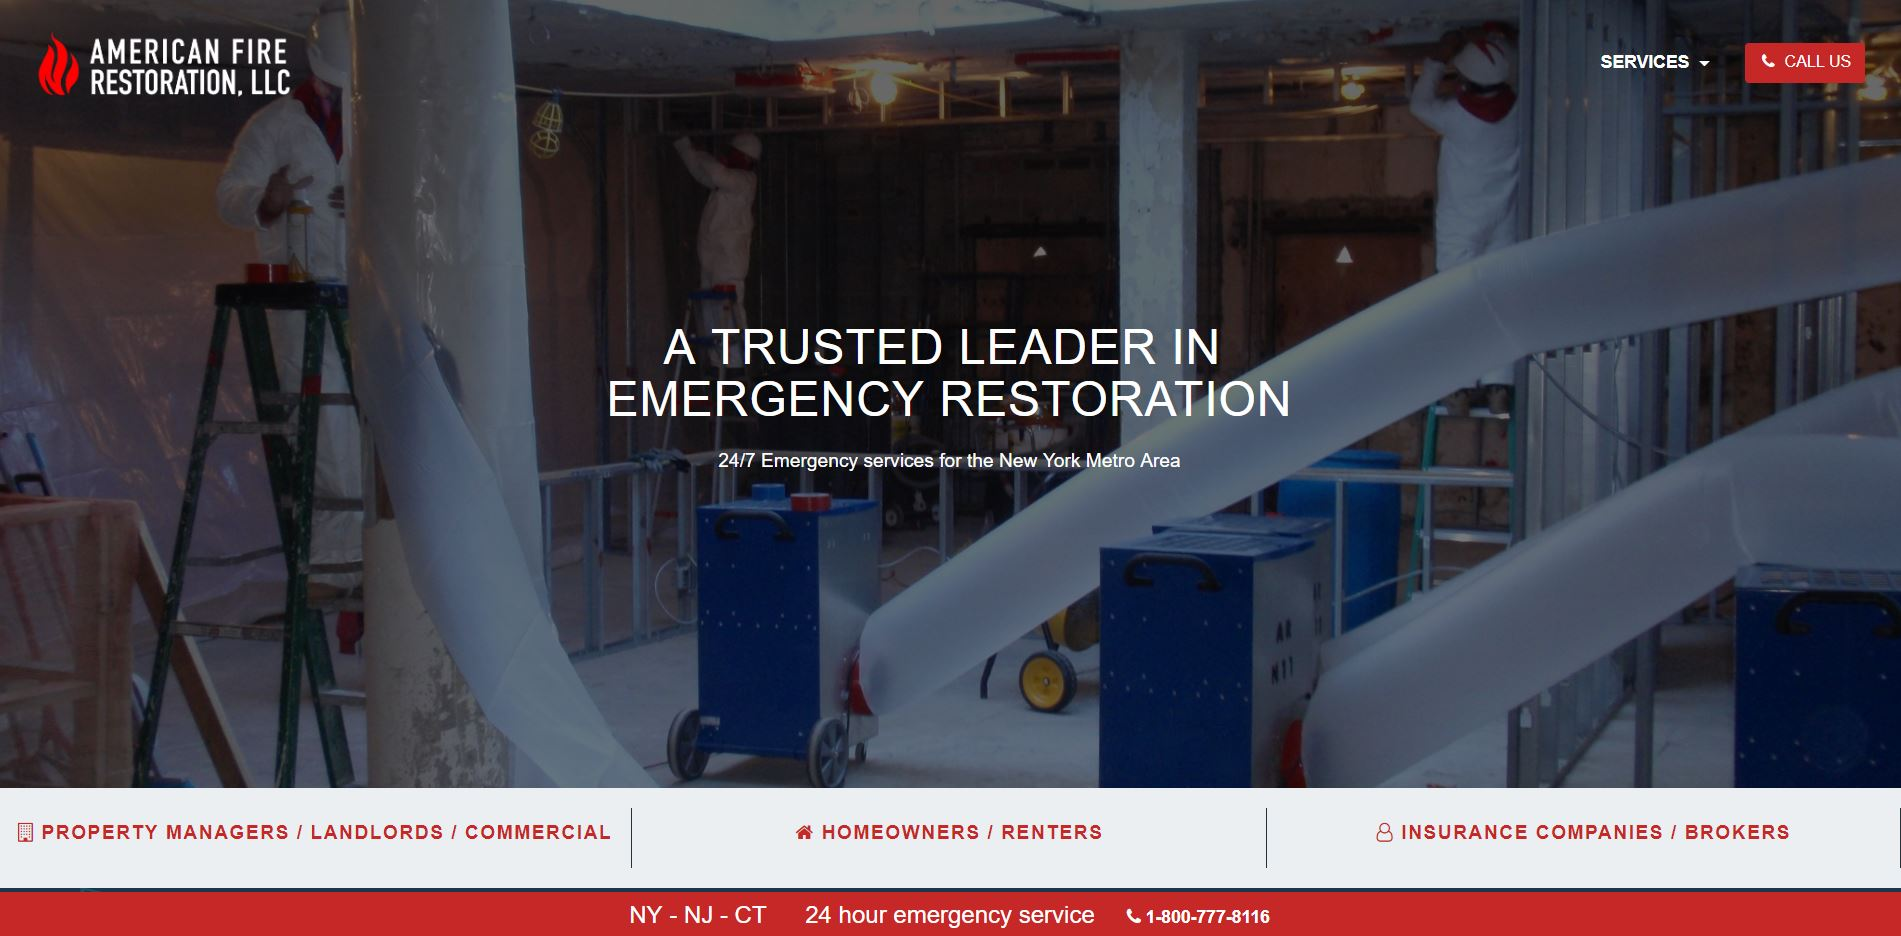 Screenshot of the American Fire Restoration homepage.